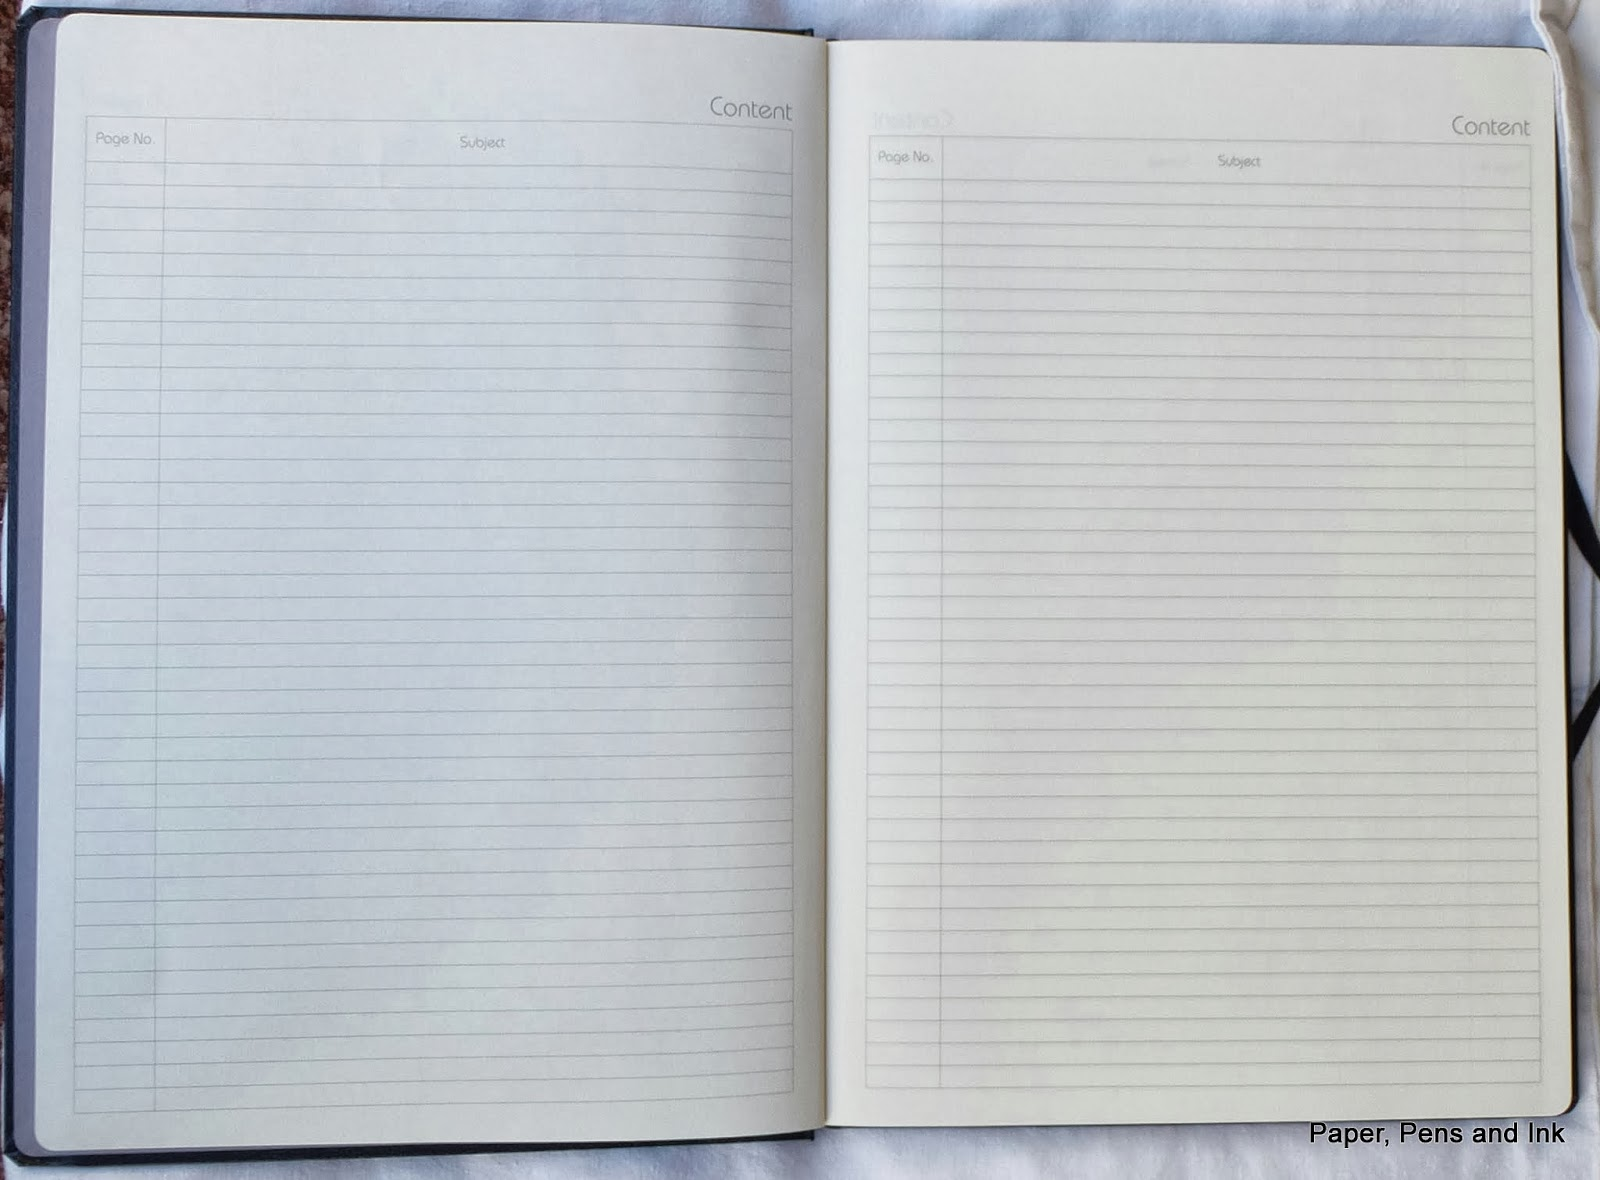 paper pens ink review of grandluxe notebooks 4 monologue there are 6 pages of table of contents in total